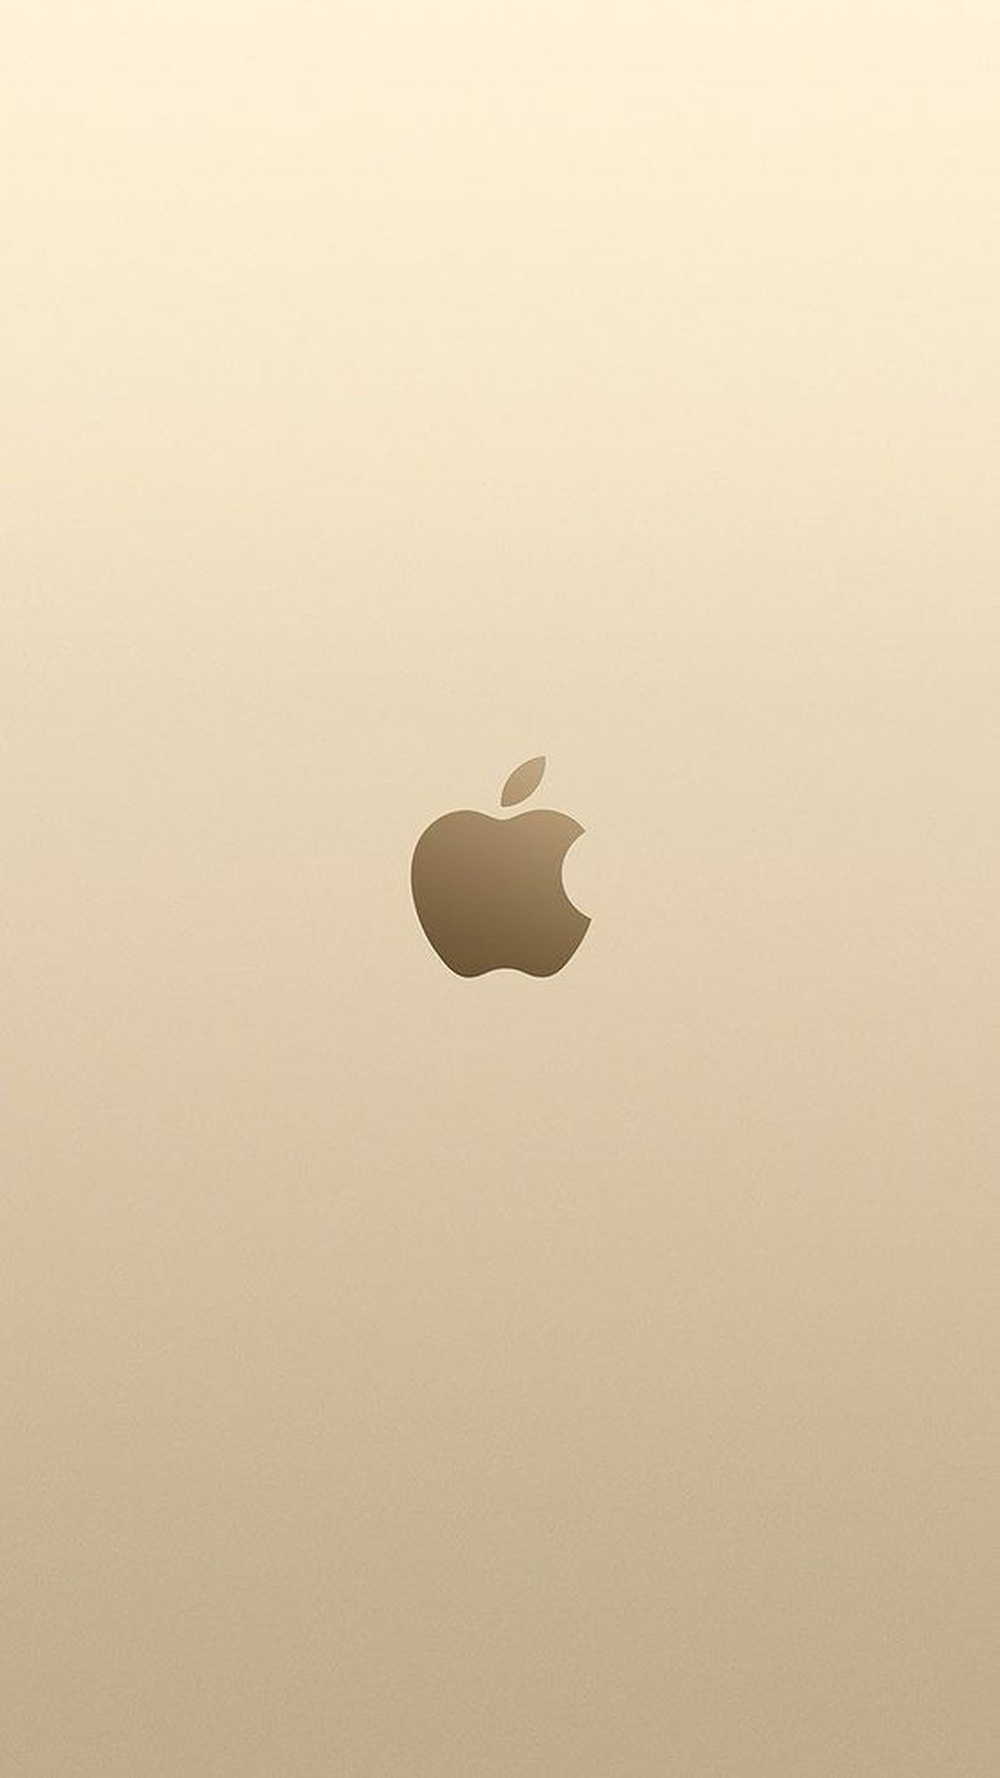 What sets apart Apple from the competition is their relentless pursuit of simplicity